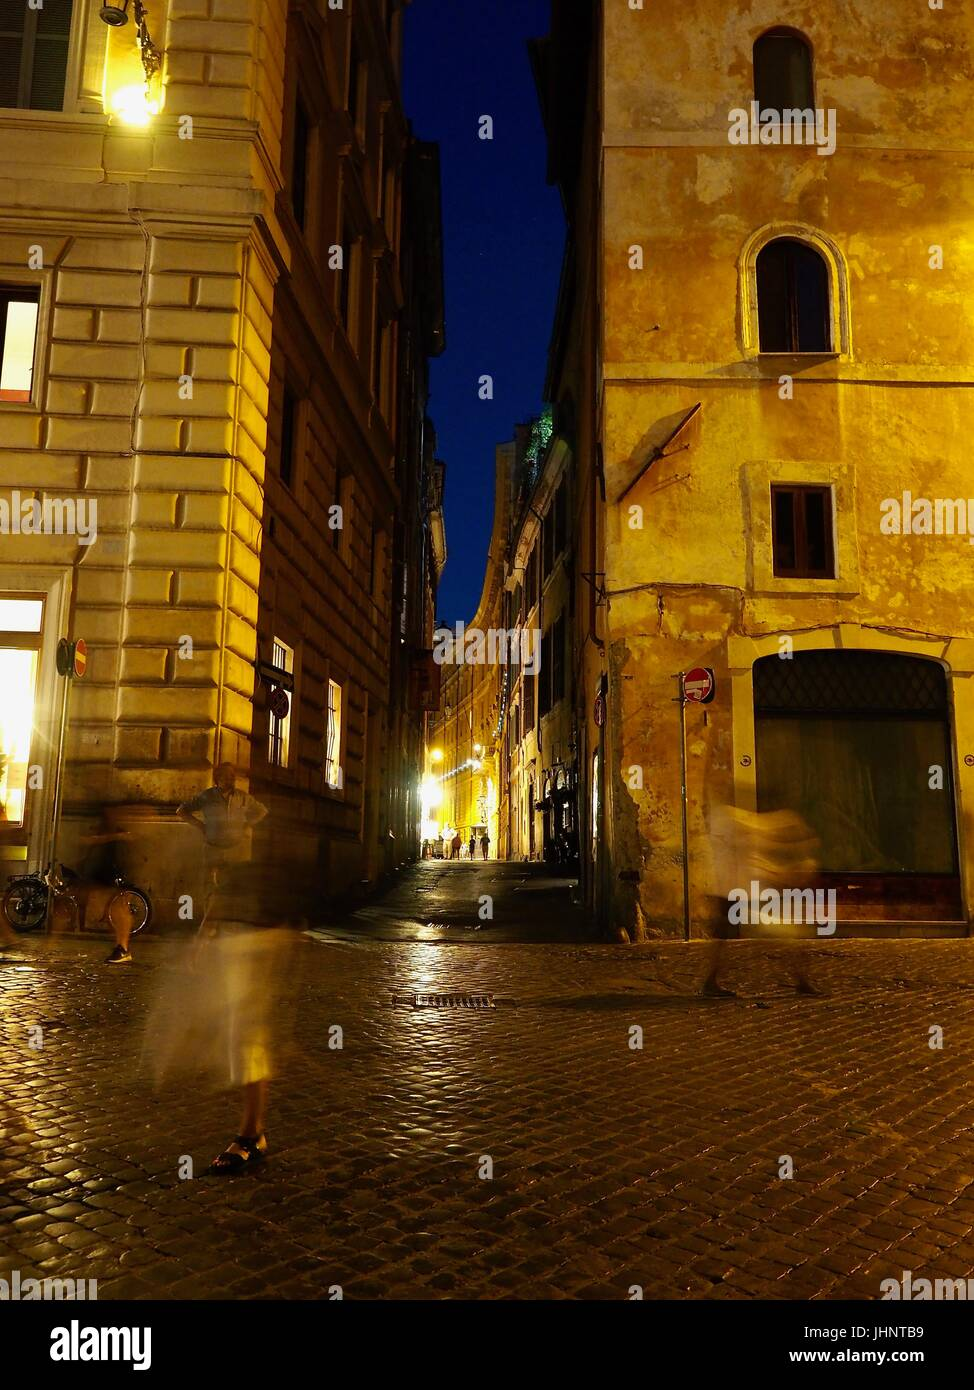 Still and movement in Rome nightlife - Stock Image